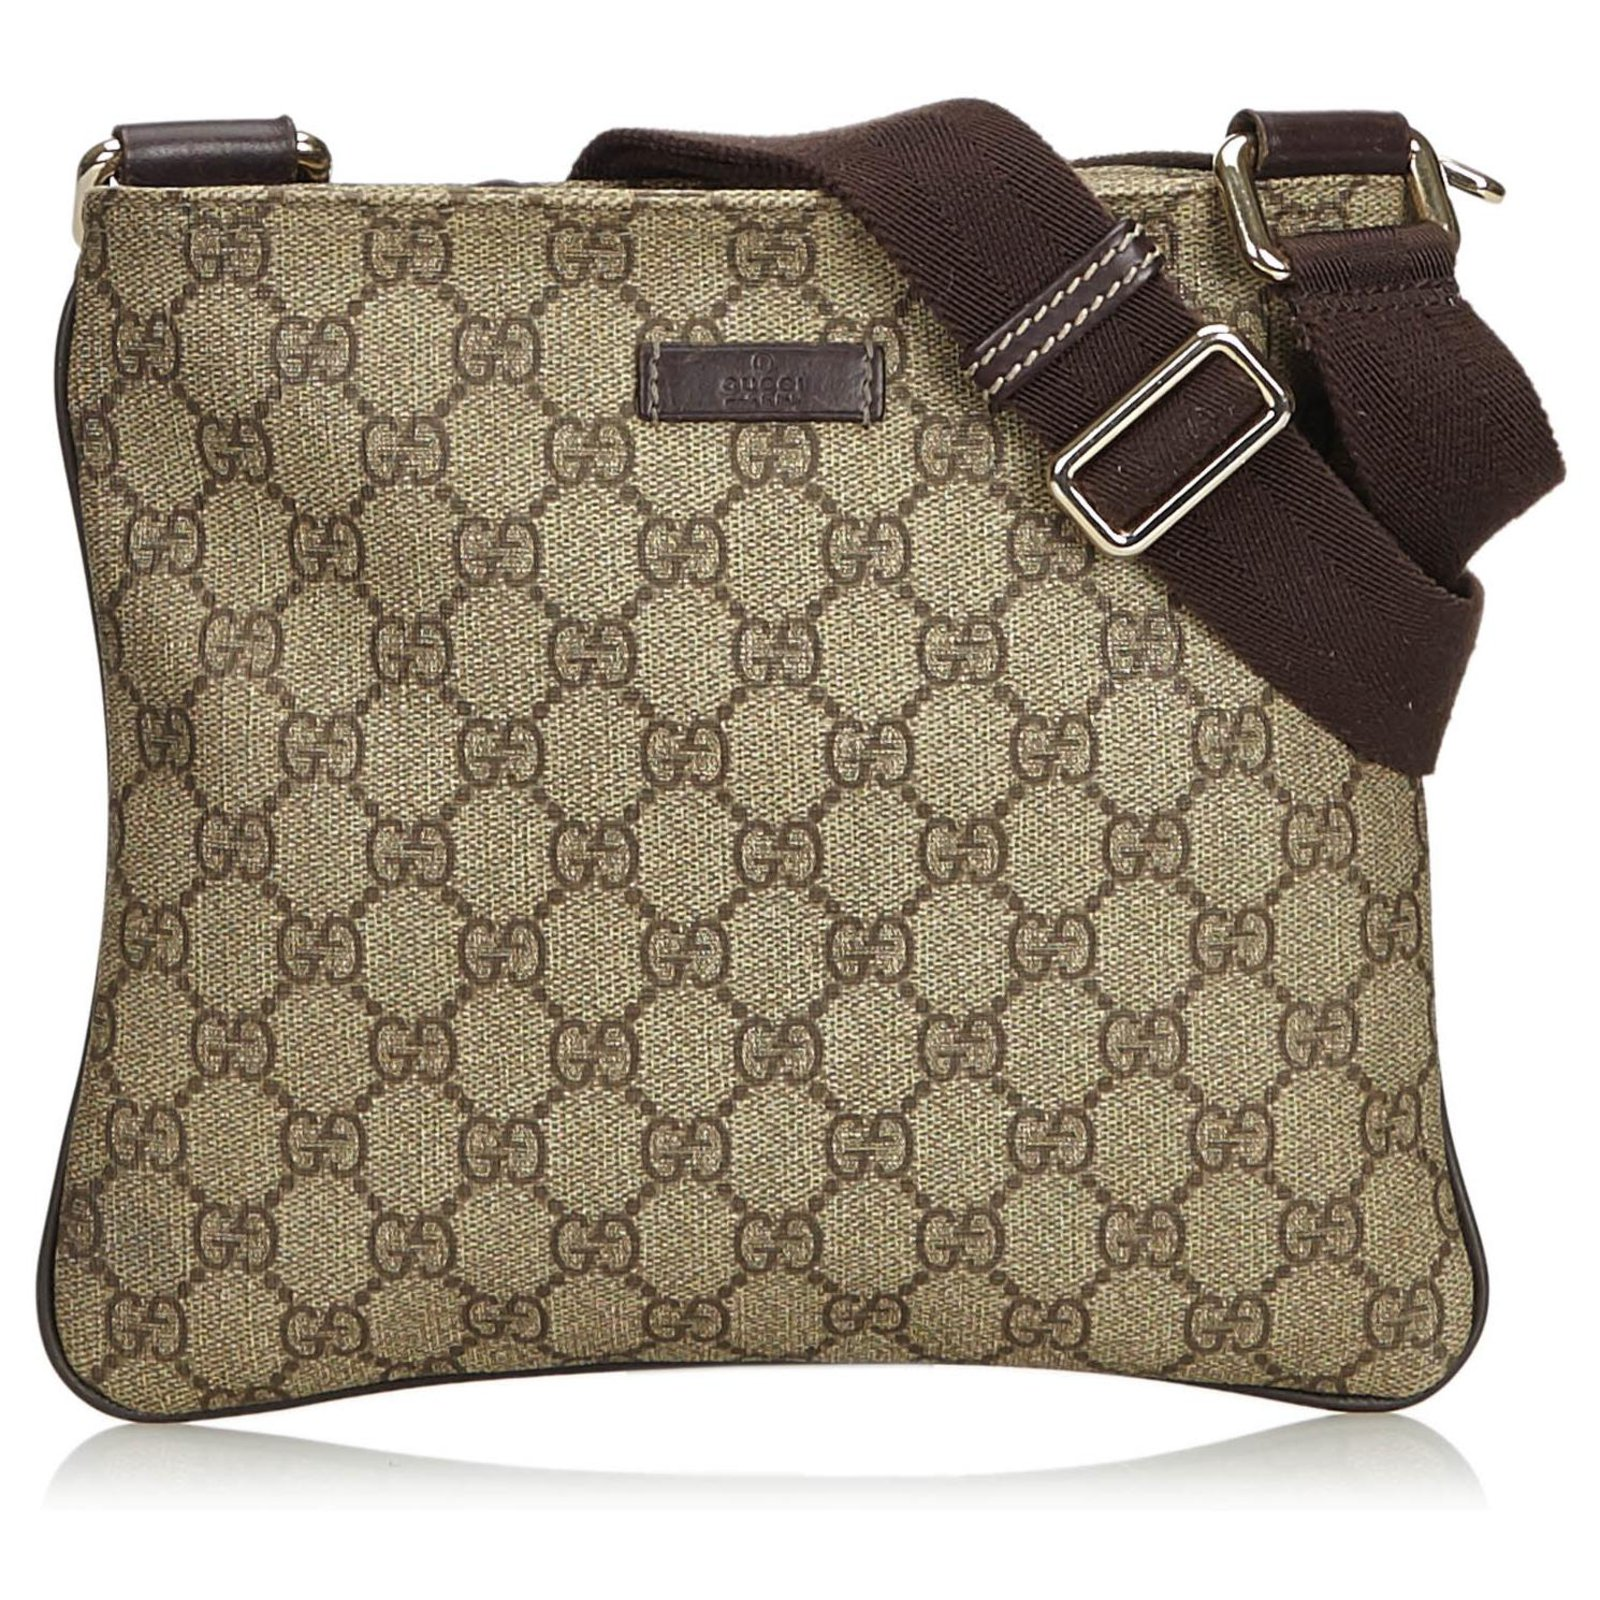 935314e0b Gucci Gucci Brown GG Supreme Coated Canvas Crossbody Bag Handbags Leather ,Other,Cloth,